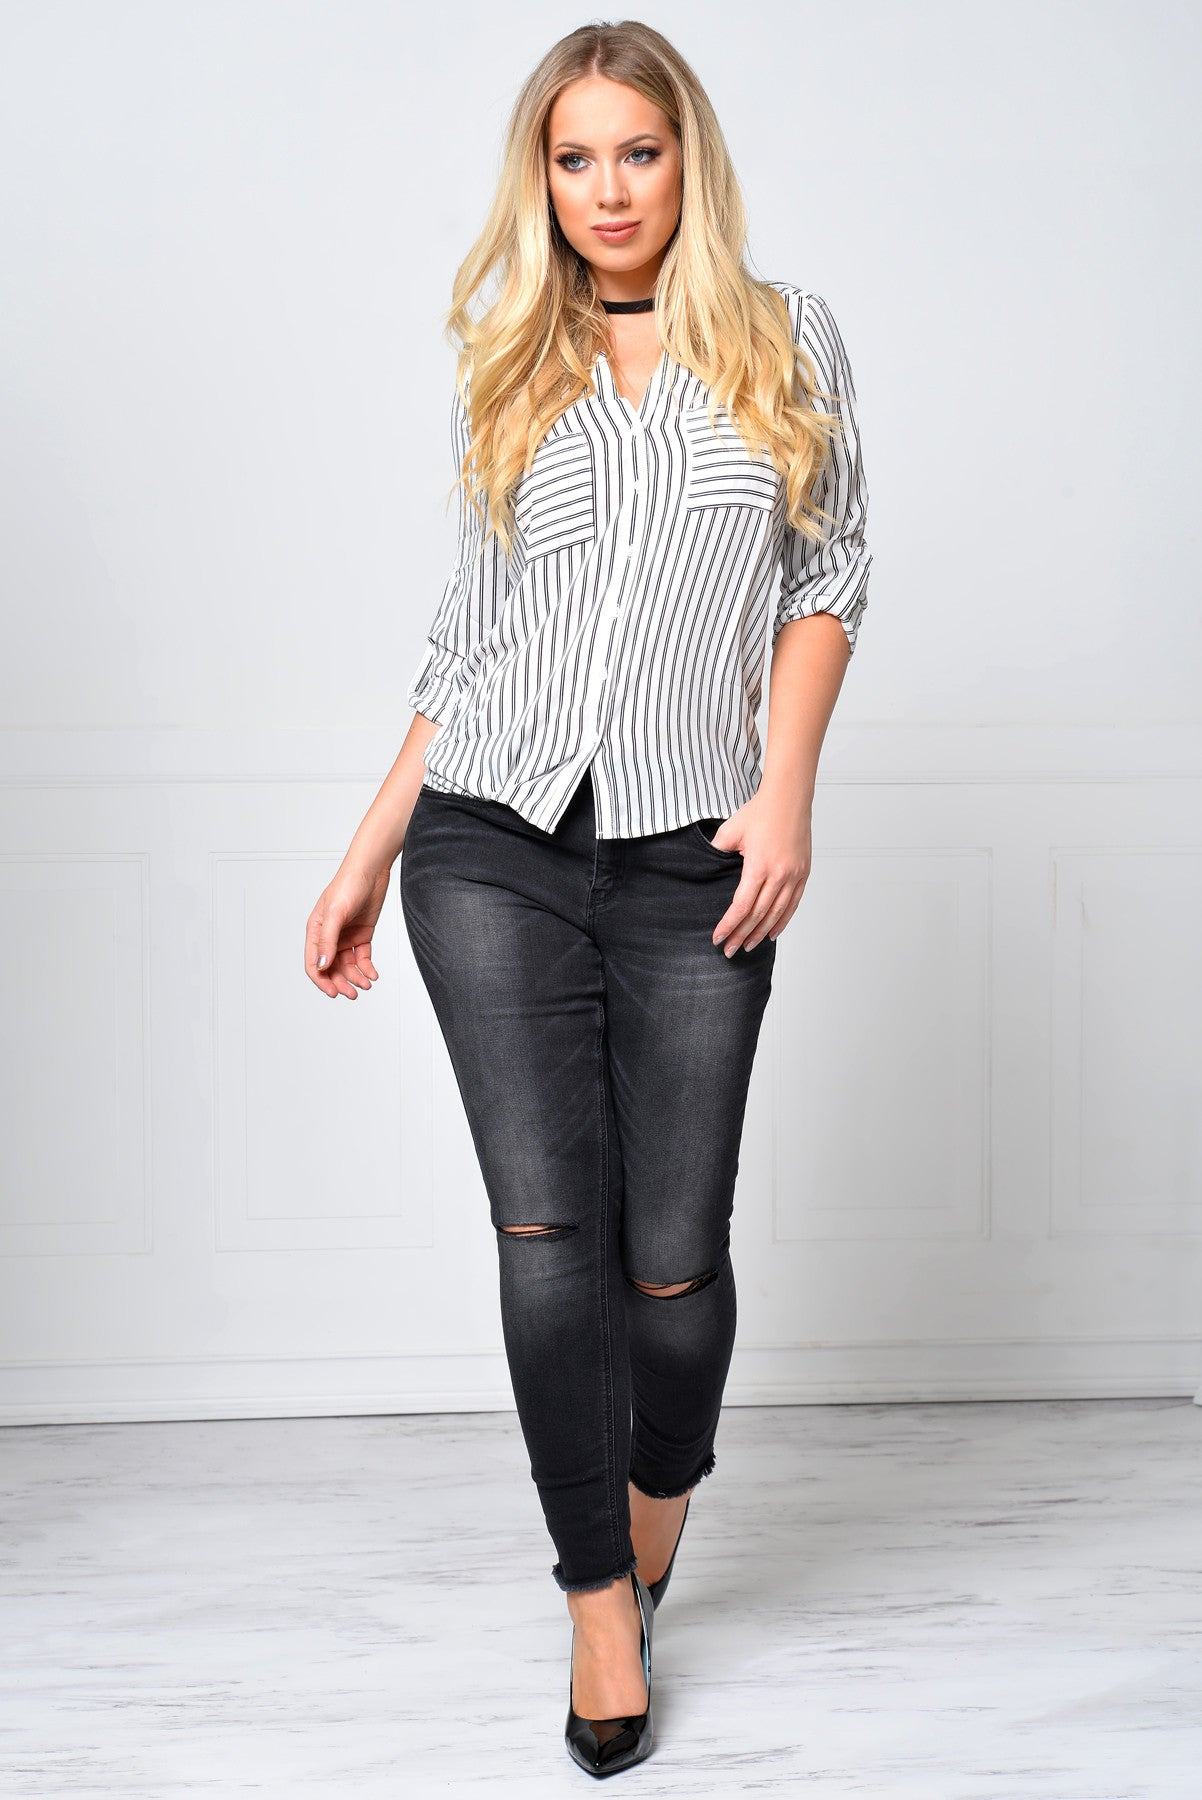 Ready To Go Striped Blouse - Fashion Effect Store  - 3